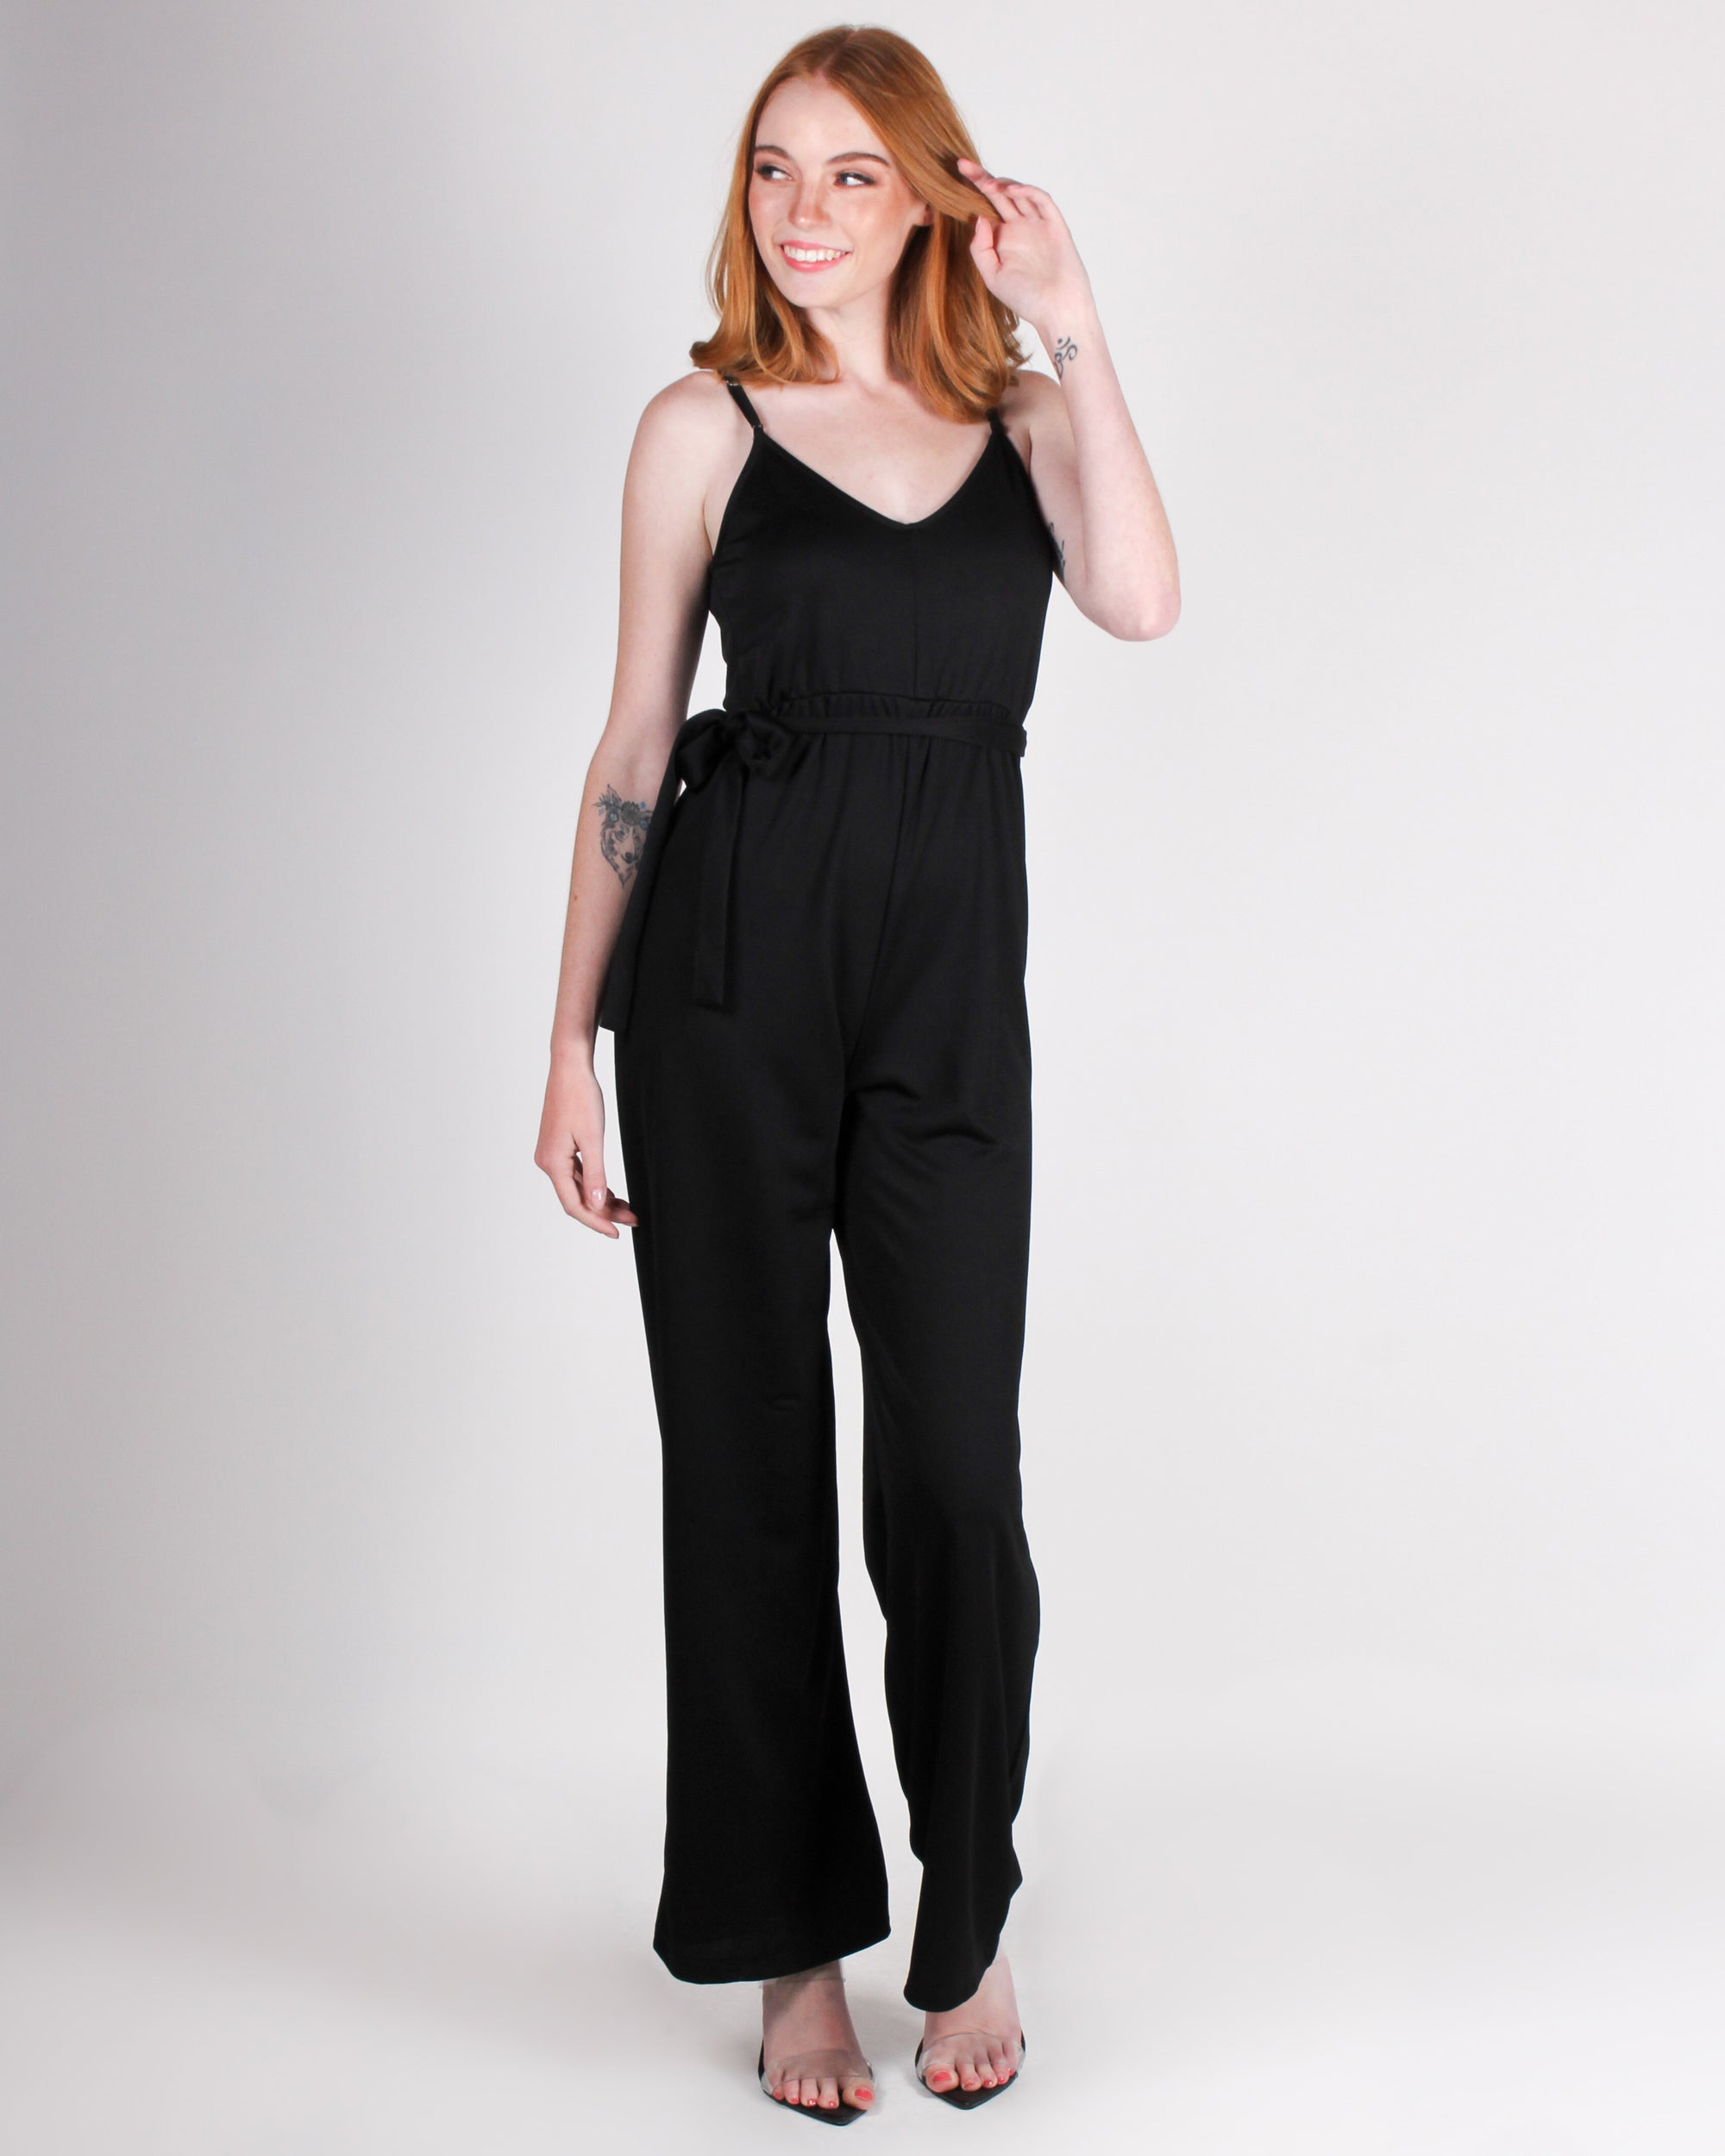 Fashion Q Shop Q Dare to Stand Out Jumpsuit (Black) HMP30813-S